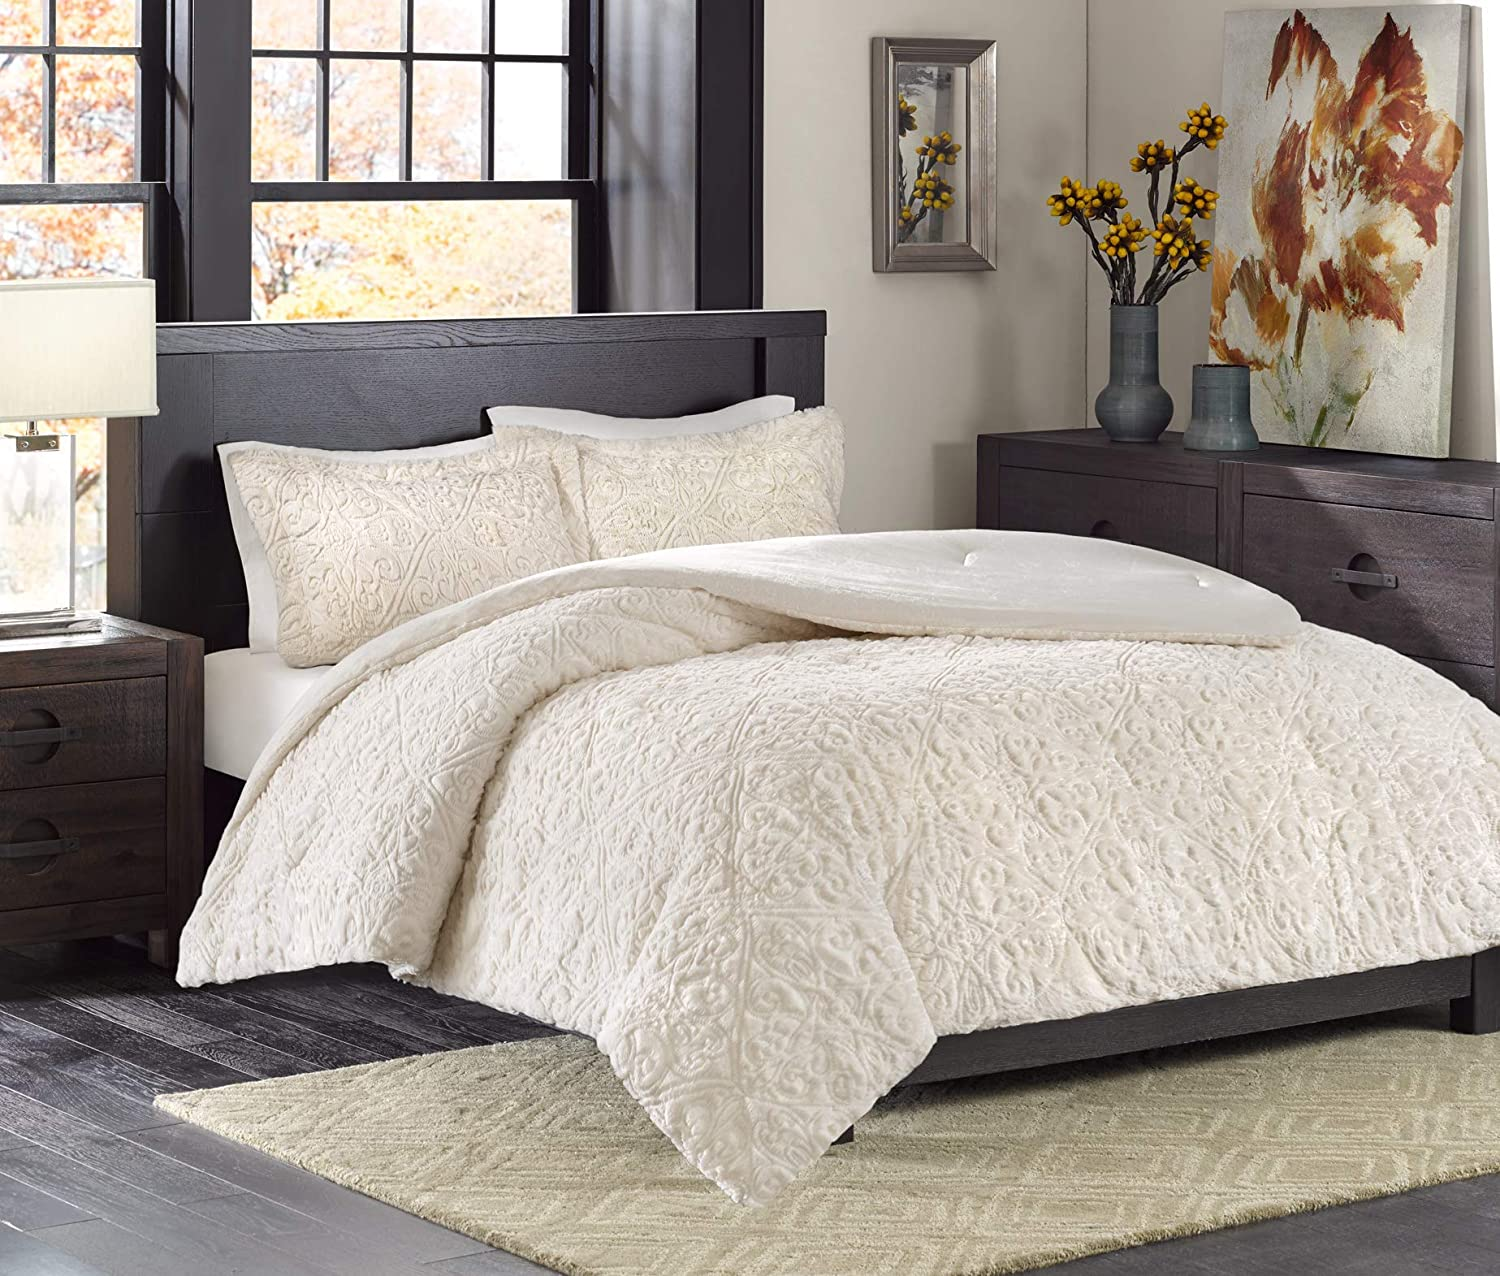 Madison Park Bismarck Twin/Twin XL Size Bed Comforter Set - Ivory, Embroidered Medallion – 2 Pieces Bedding Sets – Faux Fur Plush Bedroom Comforters